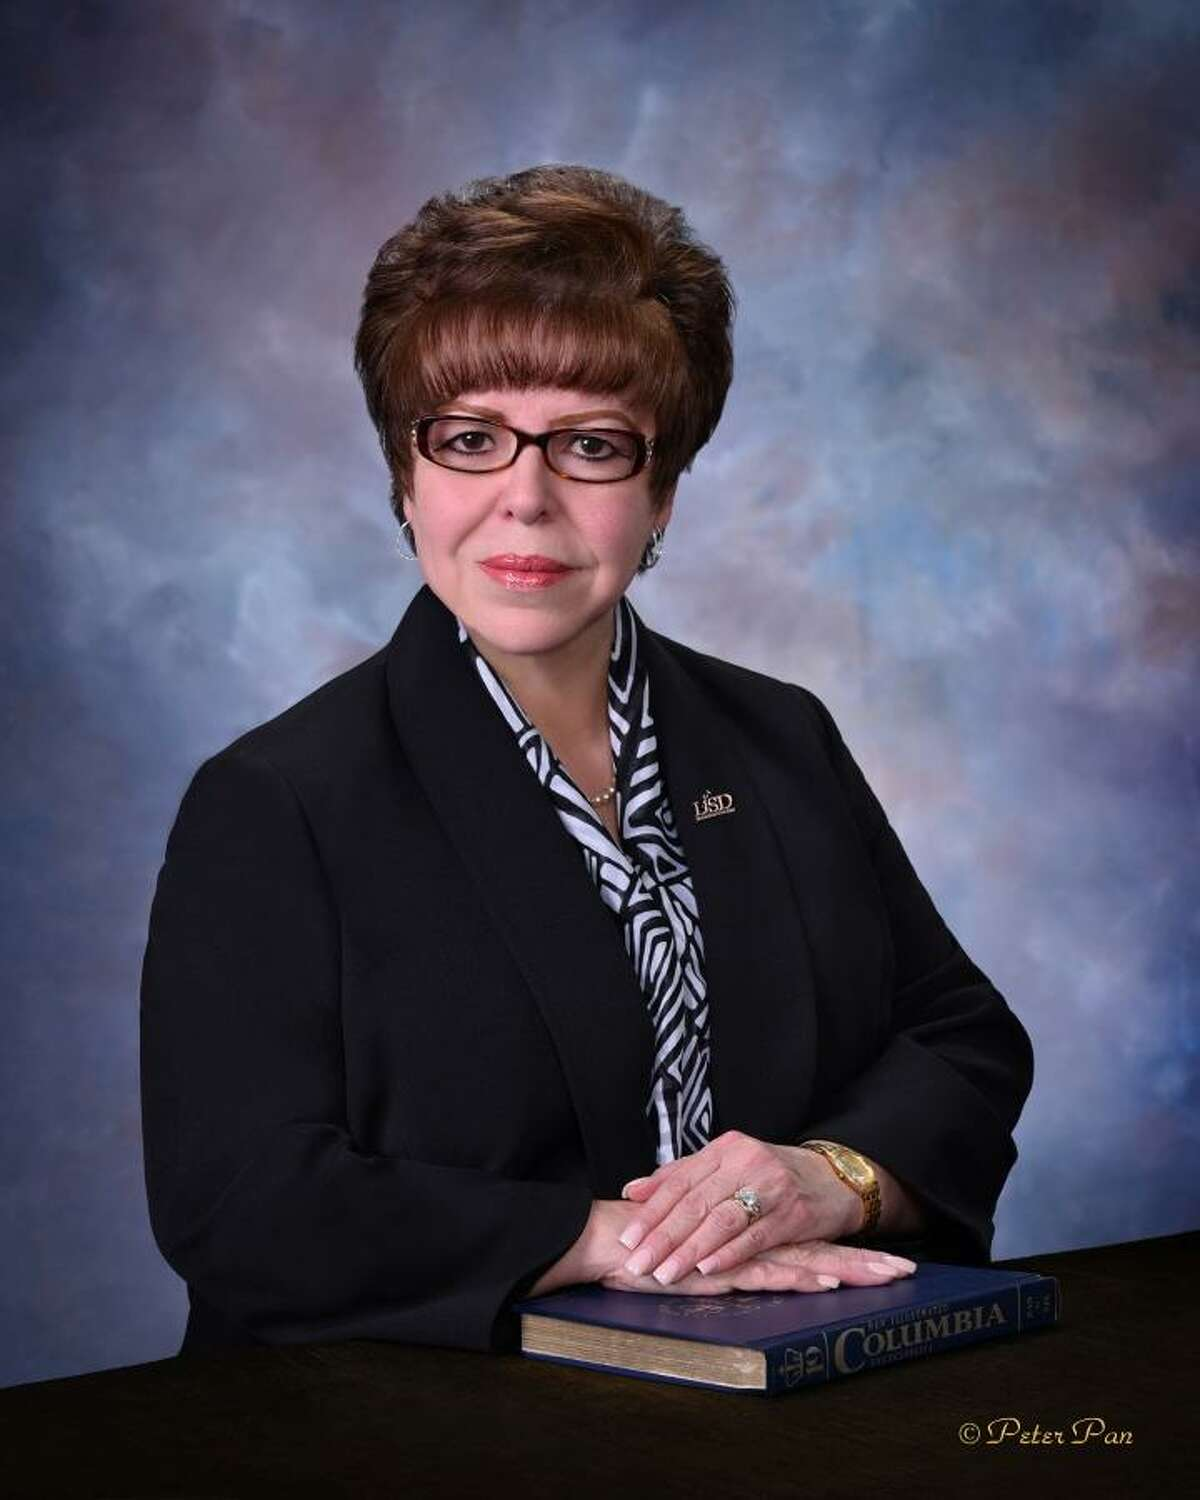 In this file photo, Laredo ISD Superintendent Sylvia Rios is shown. TheLISD board of trustees approved over $3 million in employee pay raises on Thursday. Superintendent Sylvia Rios